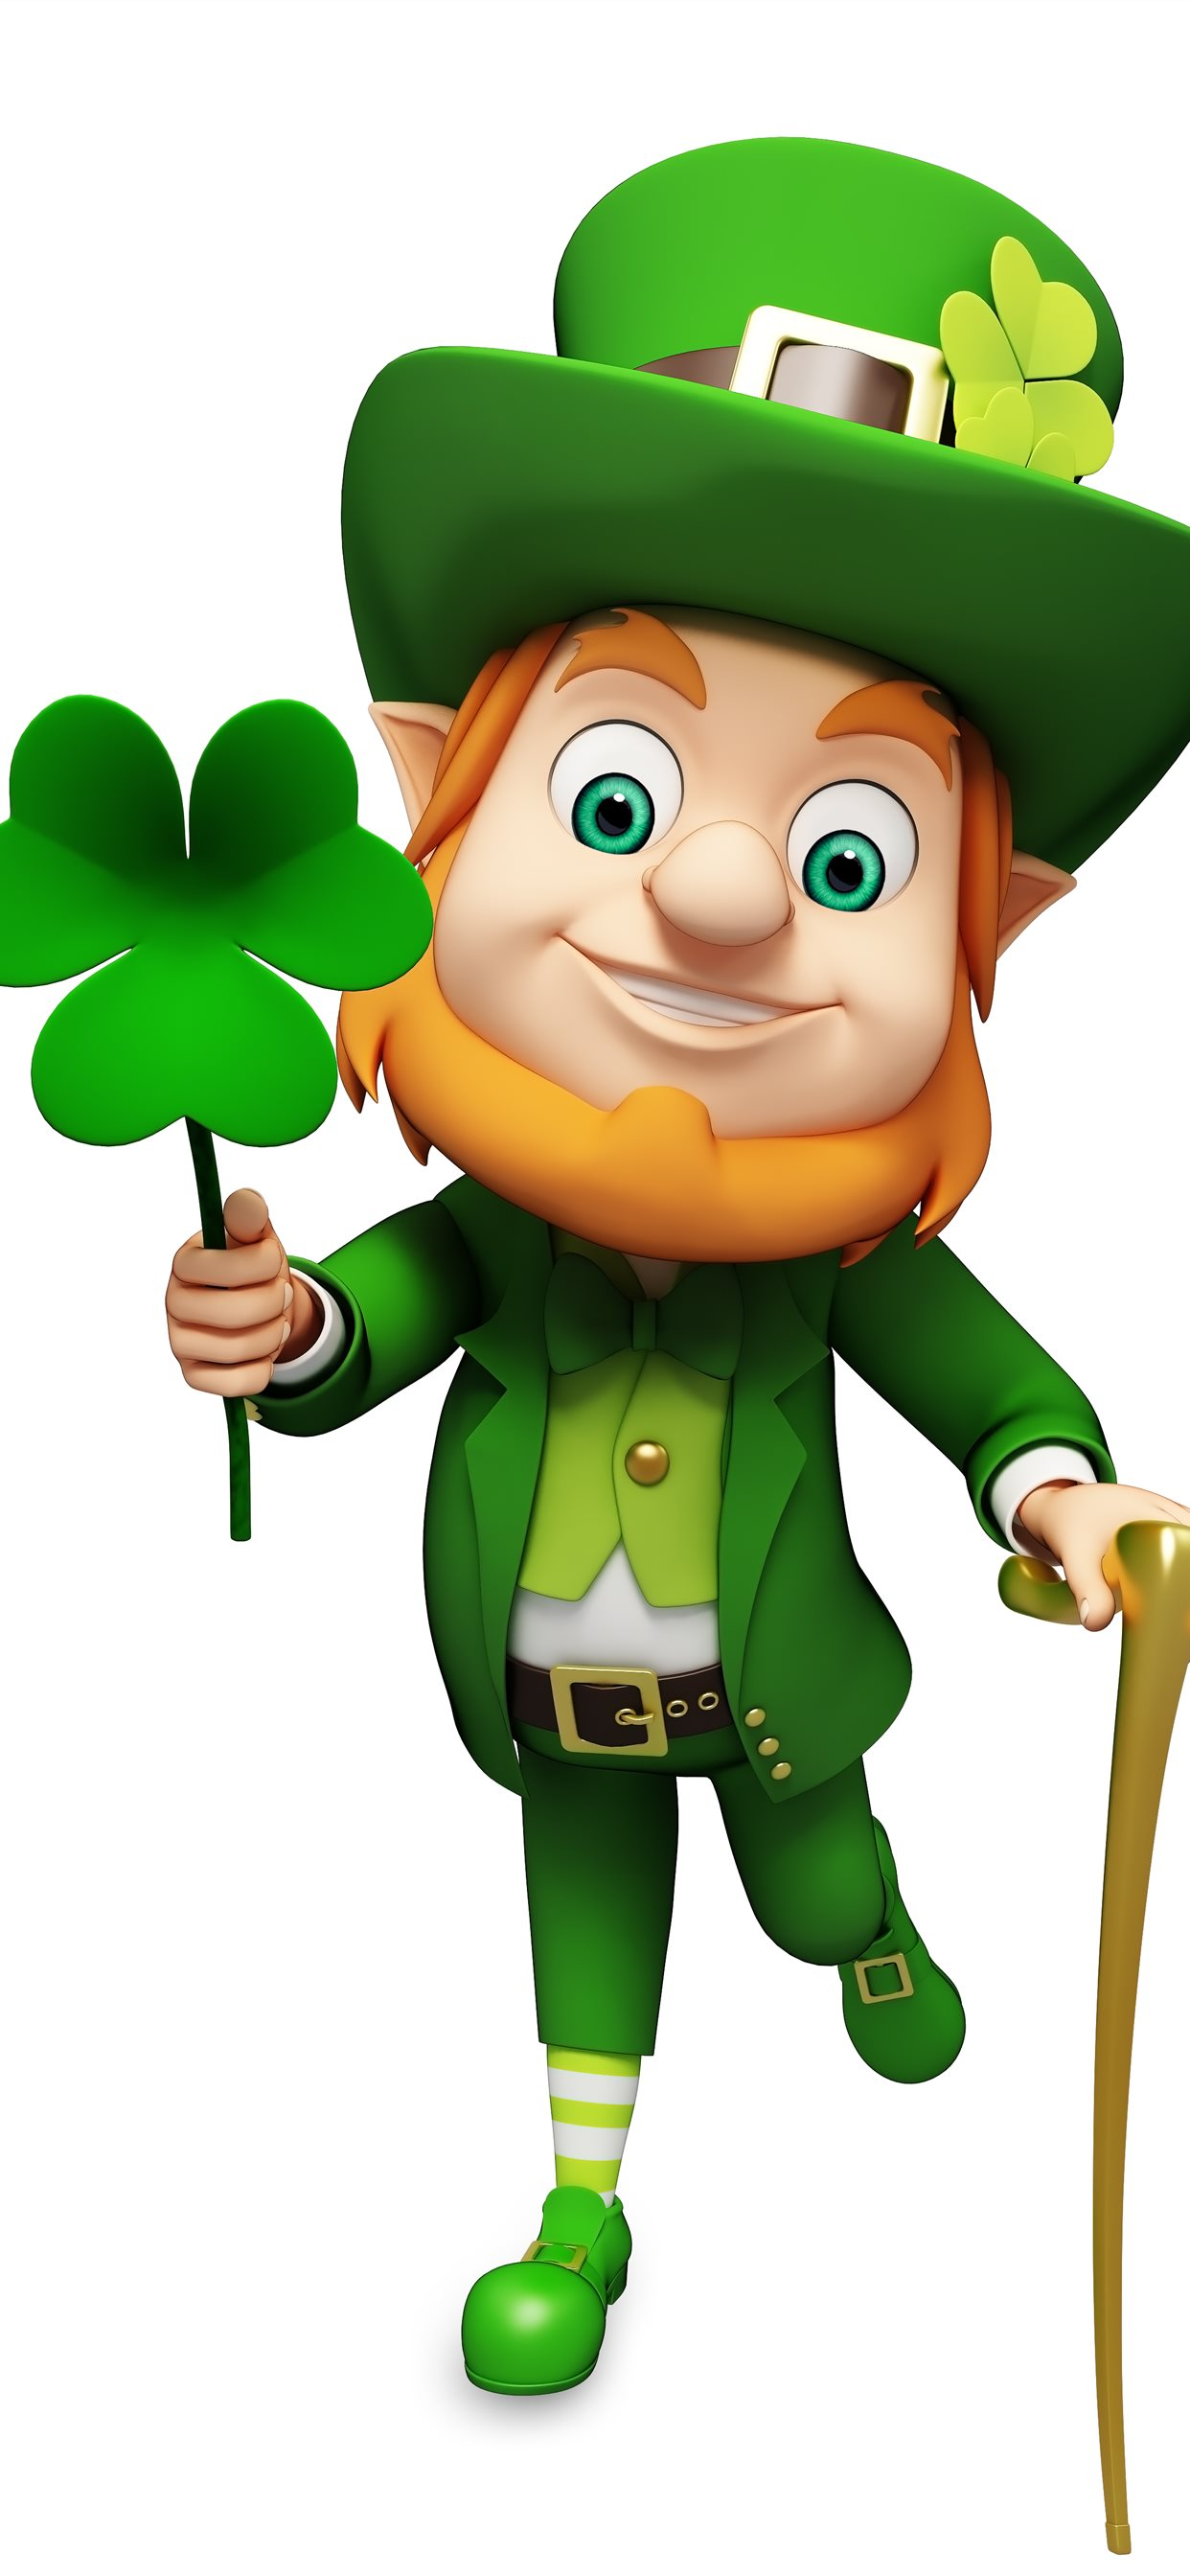 Happy Hour Happy St Patrick S Day Iphone Wallpapers Free Download